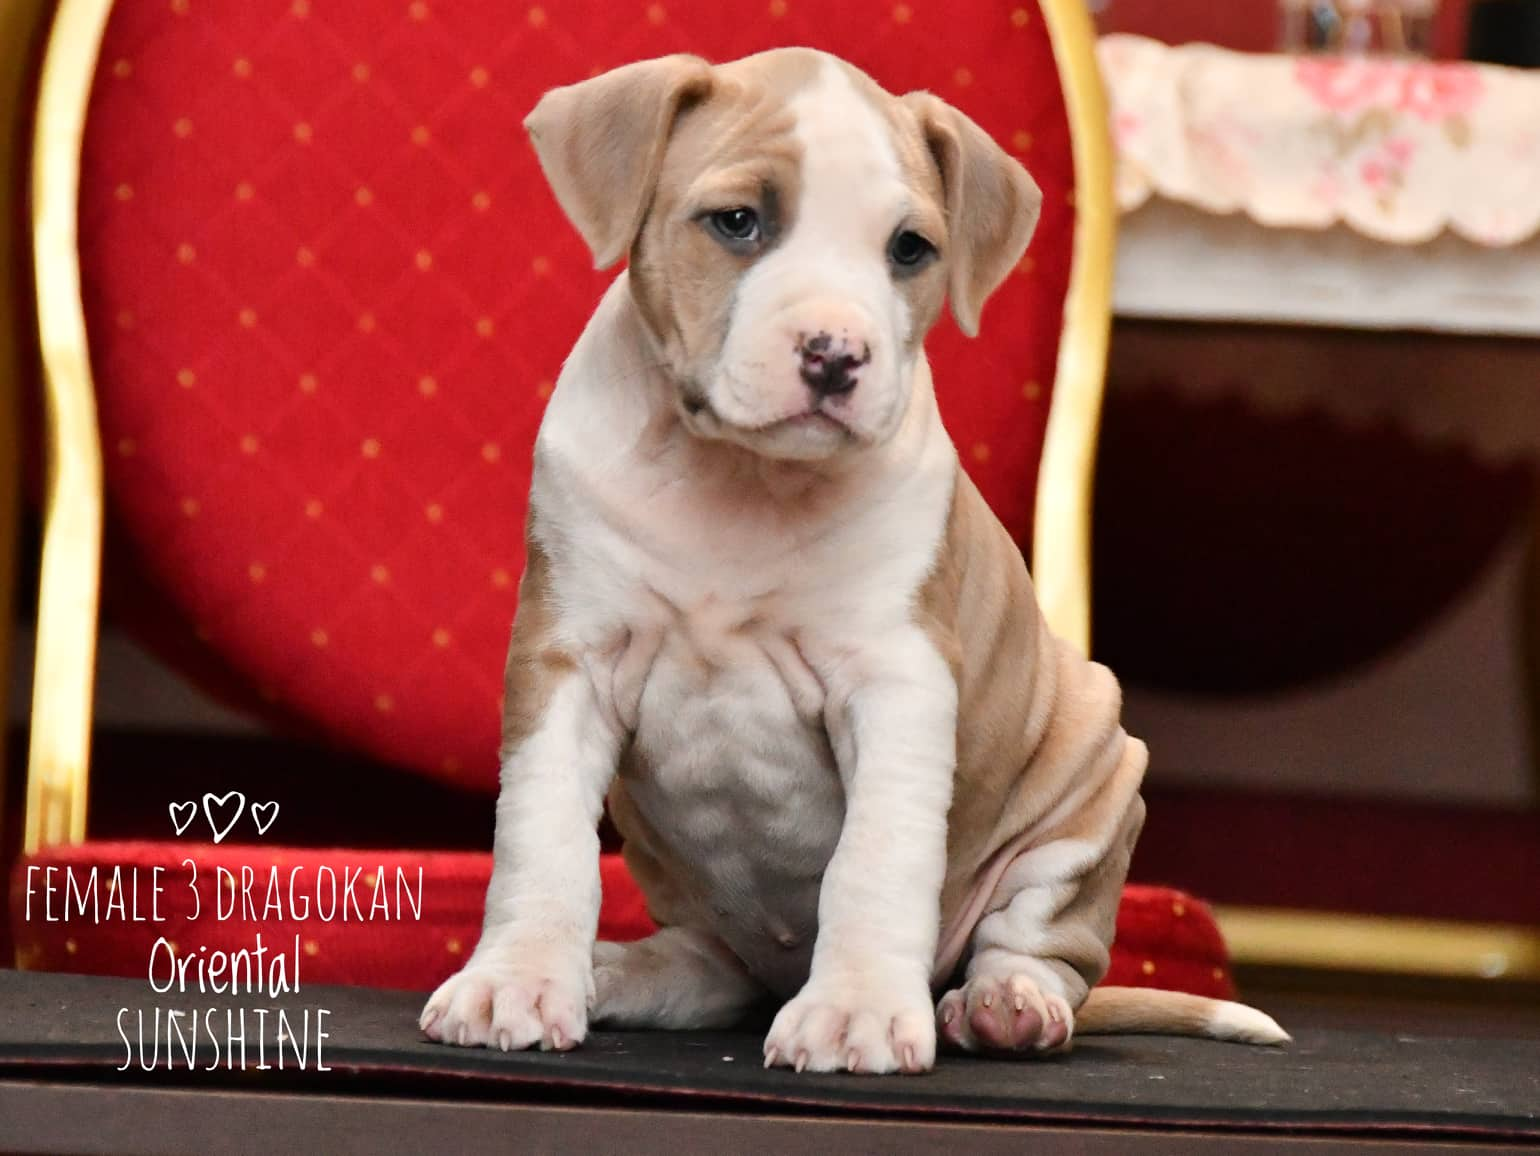 American Staffordshire Terrier pups for sale